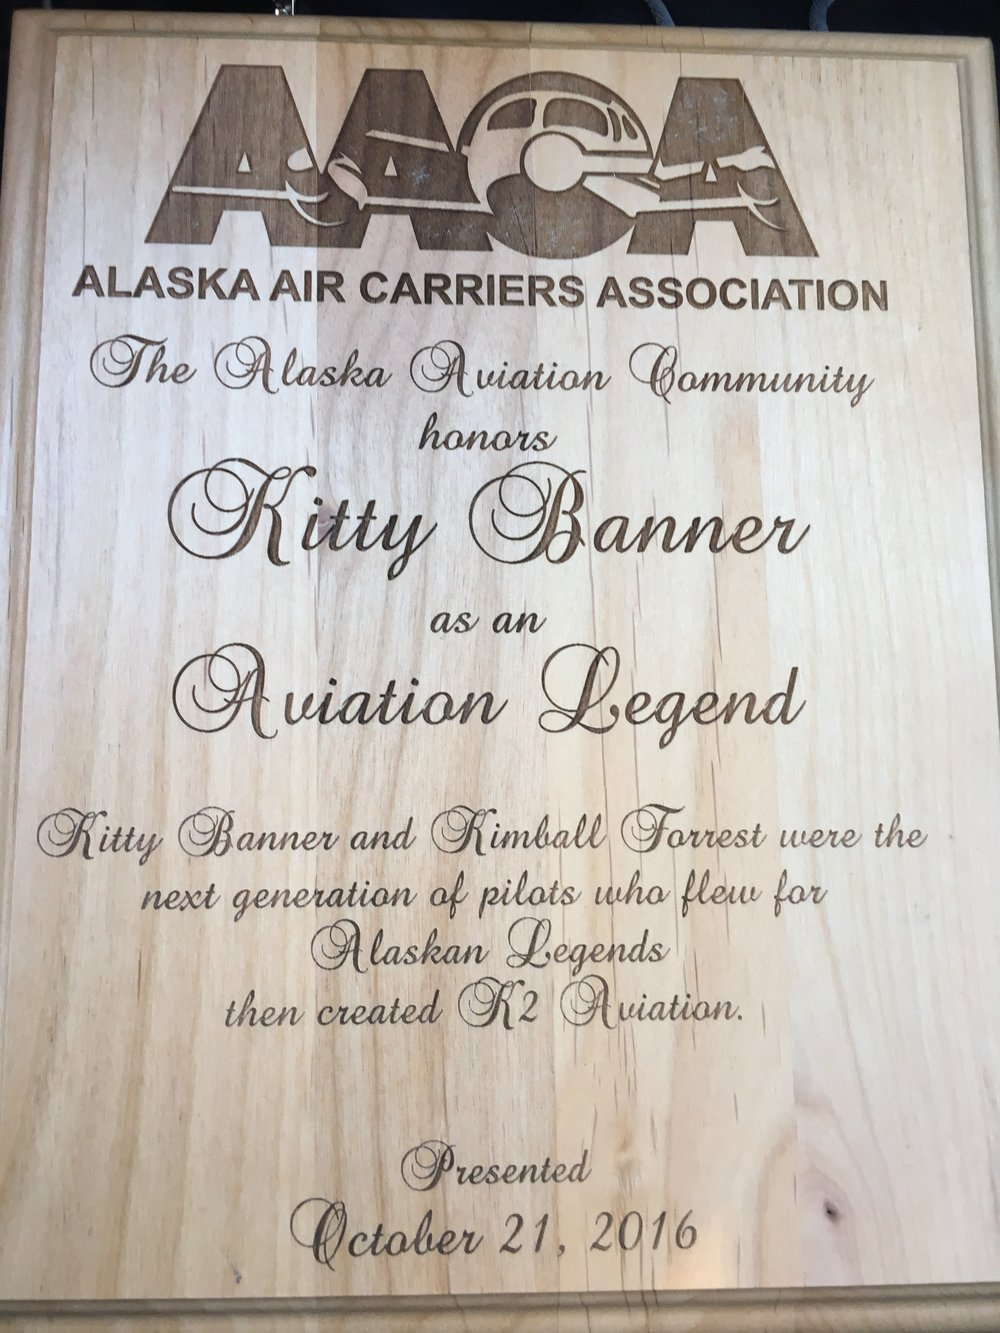 236 Alaska Air Carriers Assn Aviation Legend Award Anchorage.Nov 2016JPG.JPG